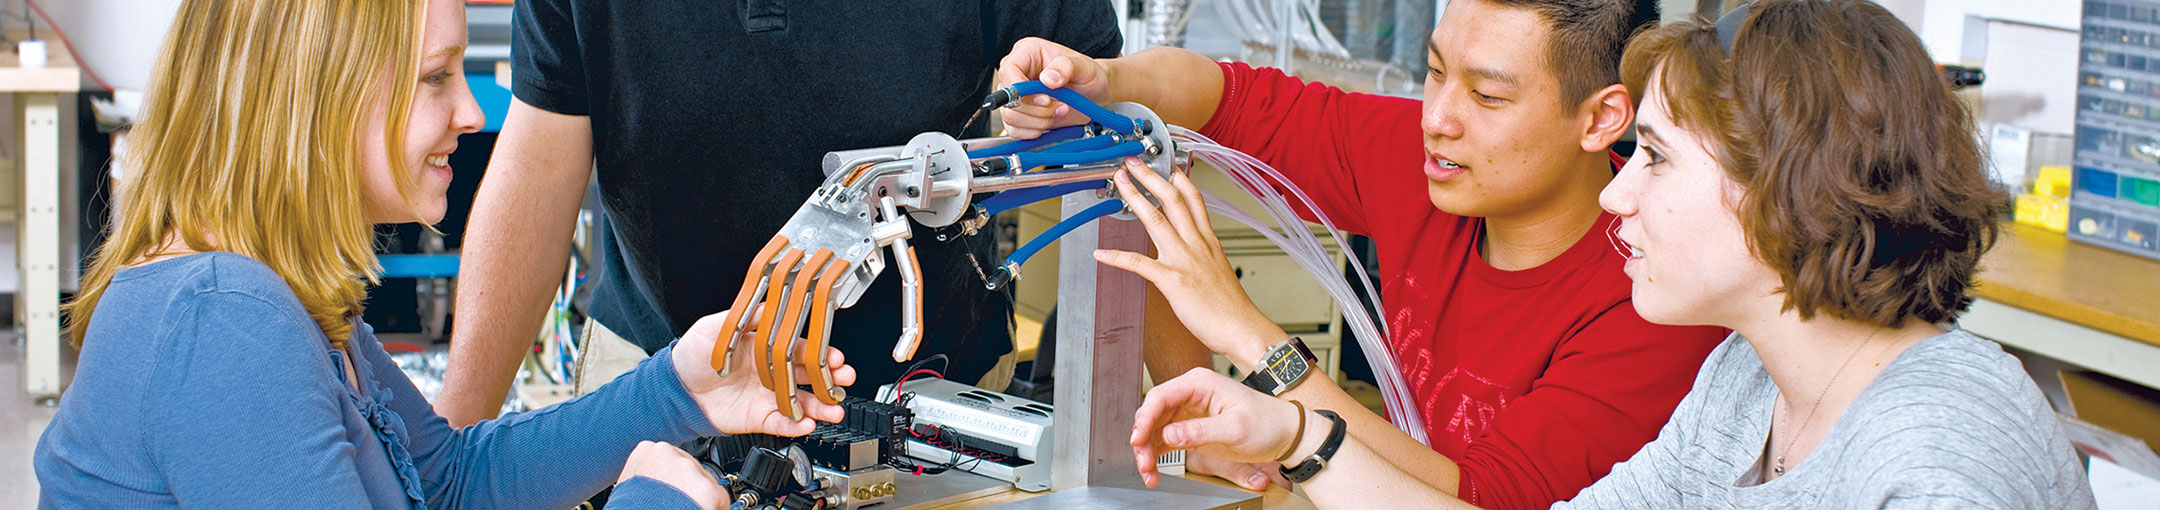 Students using a robotic hand